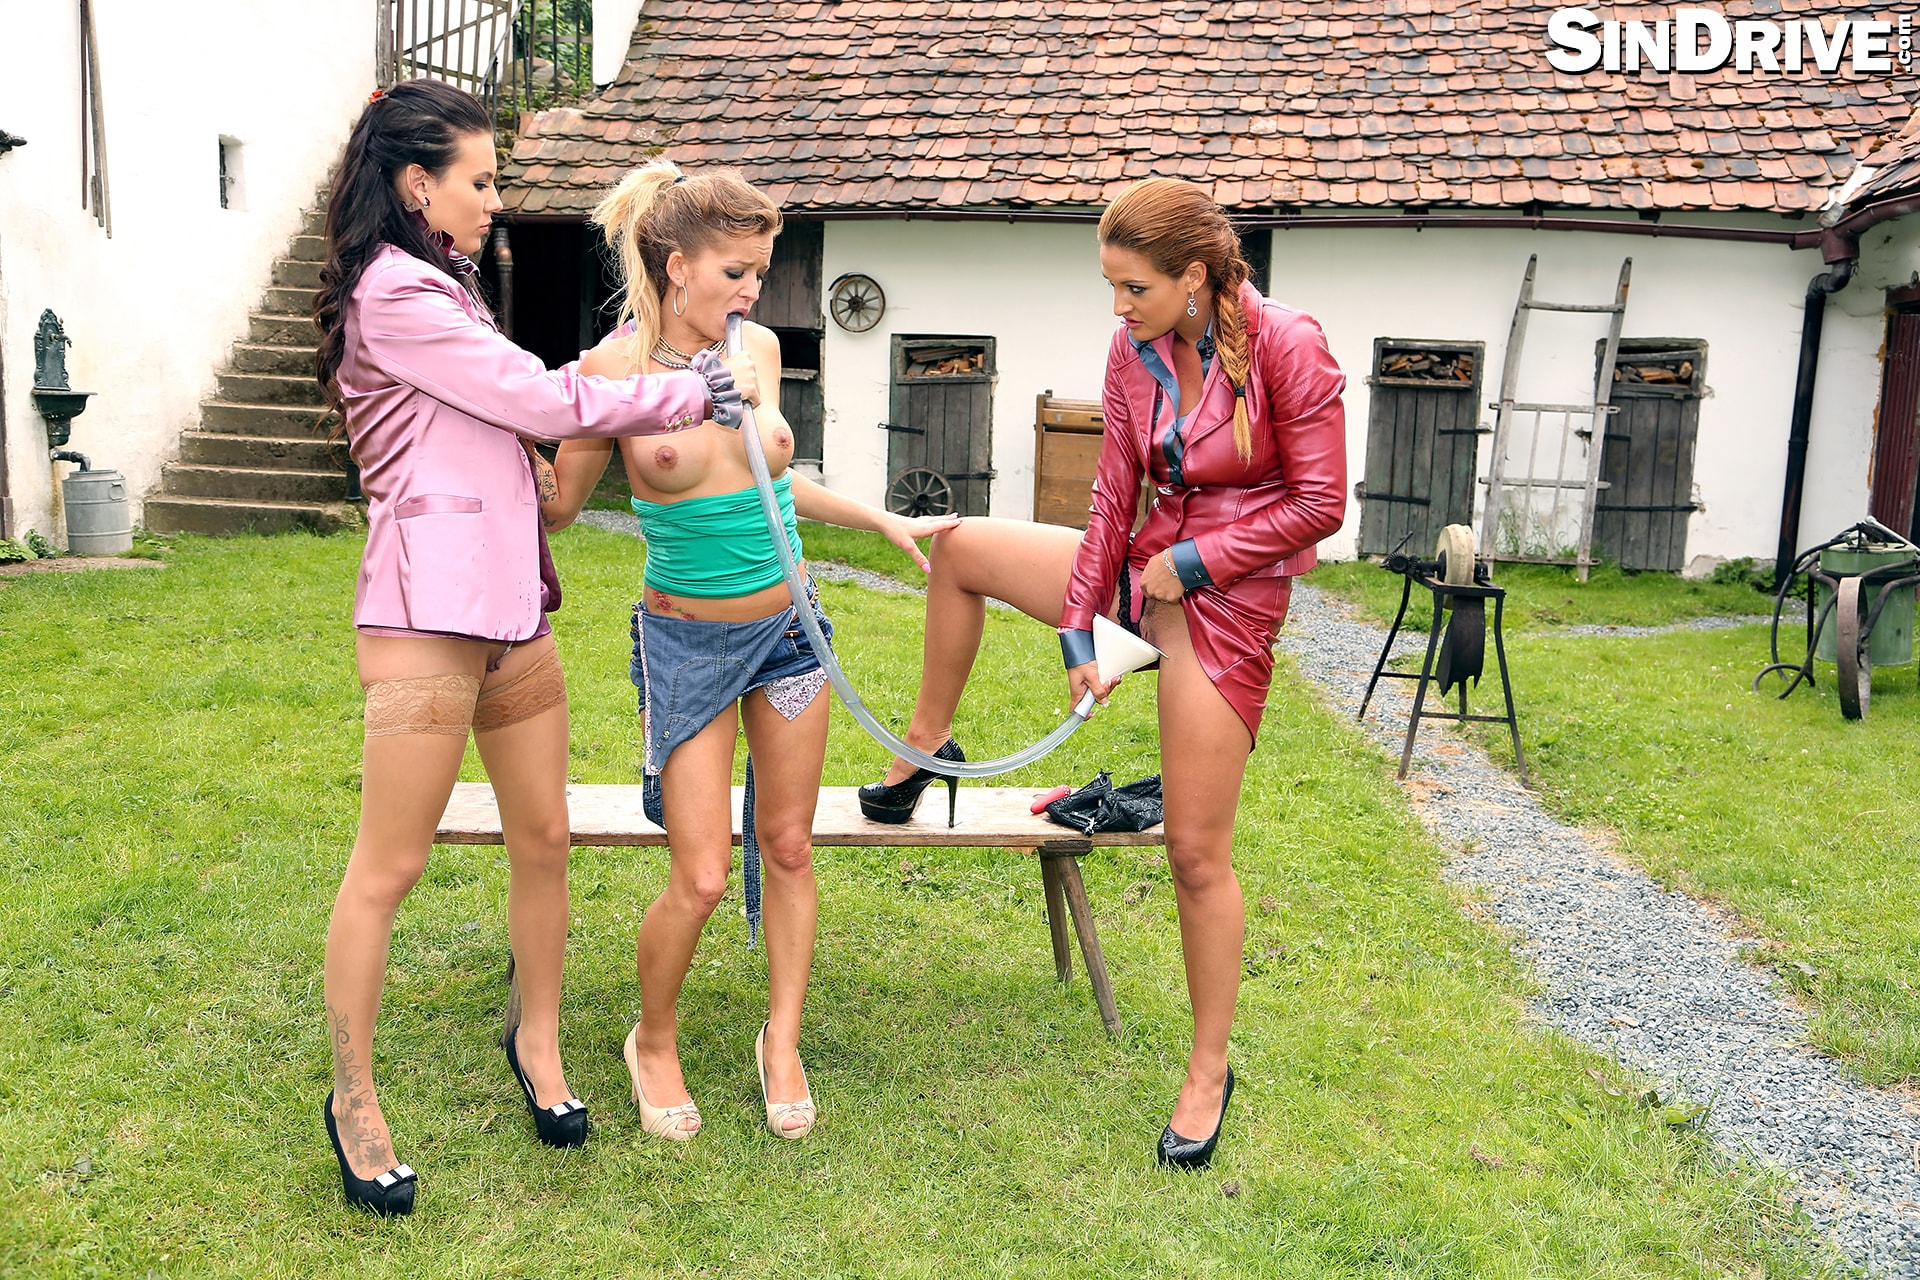 Sindrive 'Bitch Better Lick My Pussy! 2 Lady Bosses Get Their Piss Freak On and A Casual Chick Is In Danger :-)' starring Nicole Vice (Photo 48)